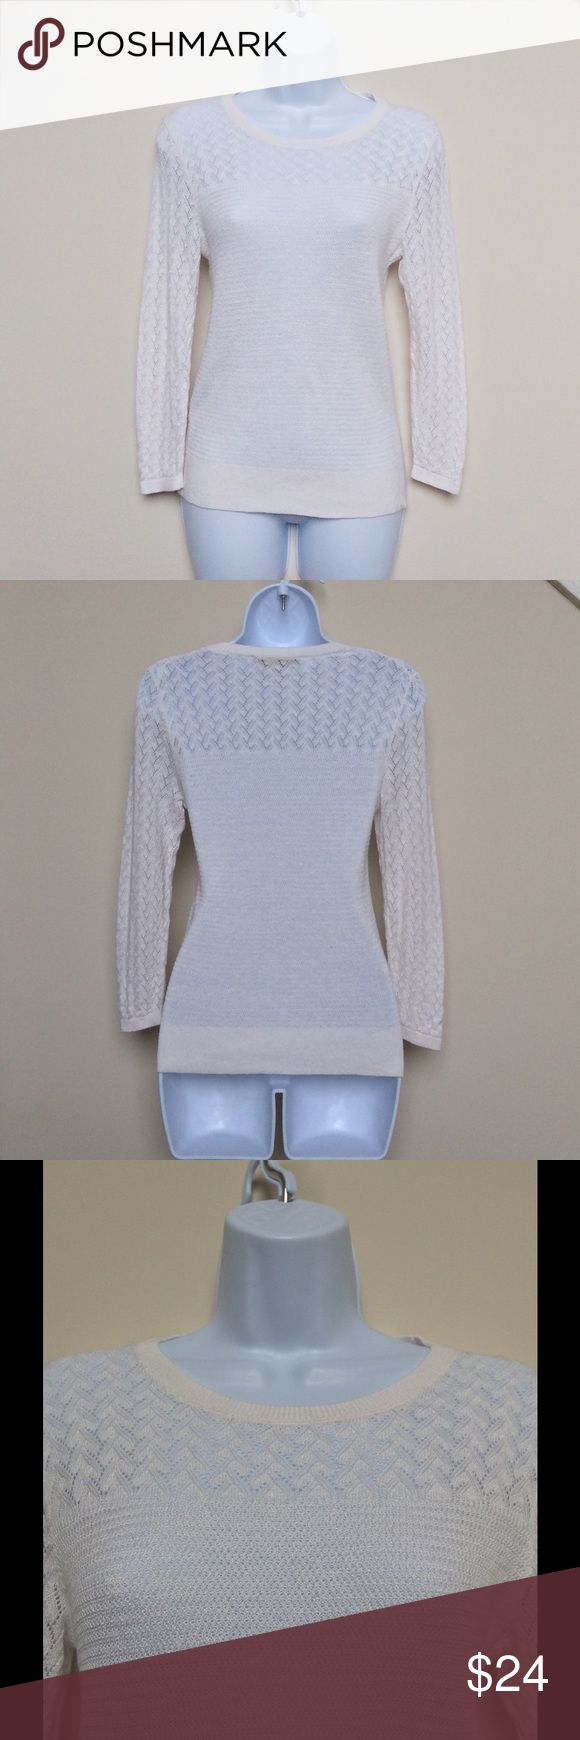 LOFT White Lacy Sweater Top, S Beautiful and delicate white lacy knit light sweater top from LOFT in size small.  Top is only gently used and is in very good condition.  Please see close up photo for a good idea of the lacy knit fashion of this top. LOFT Sweaters